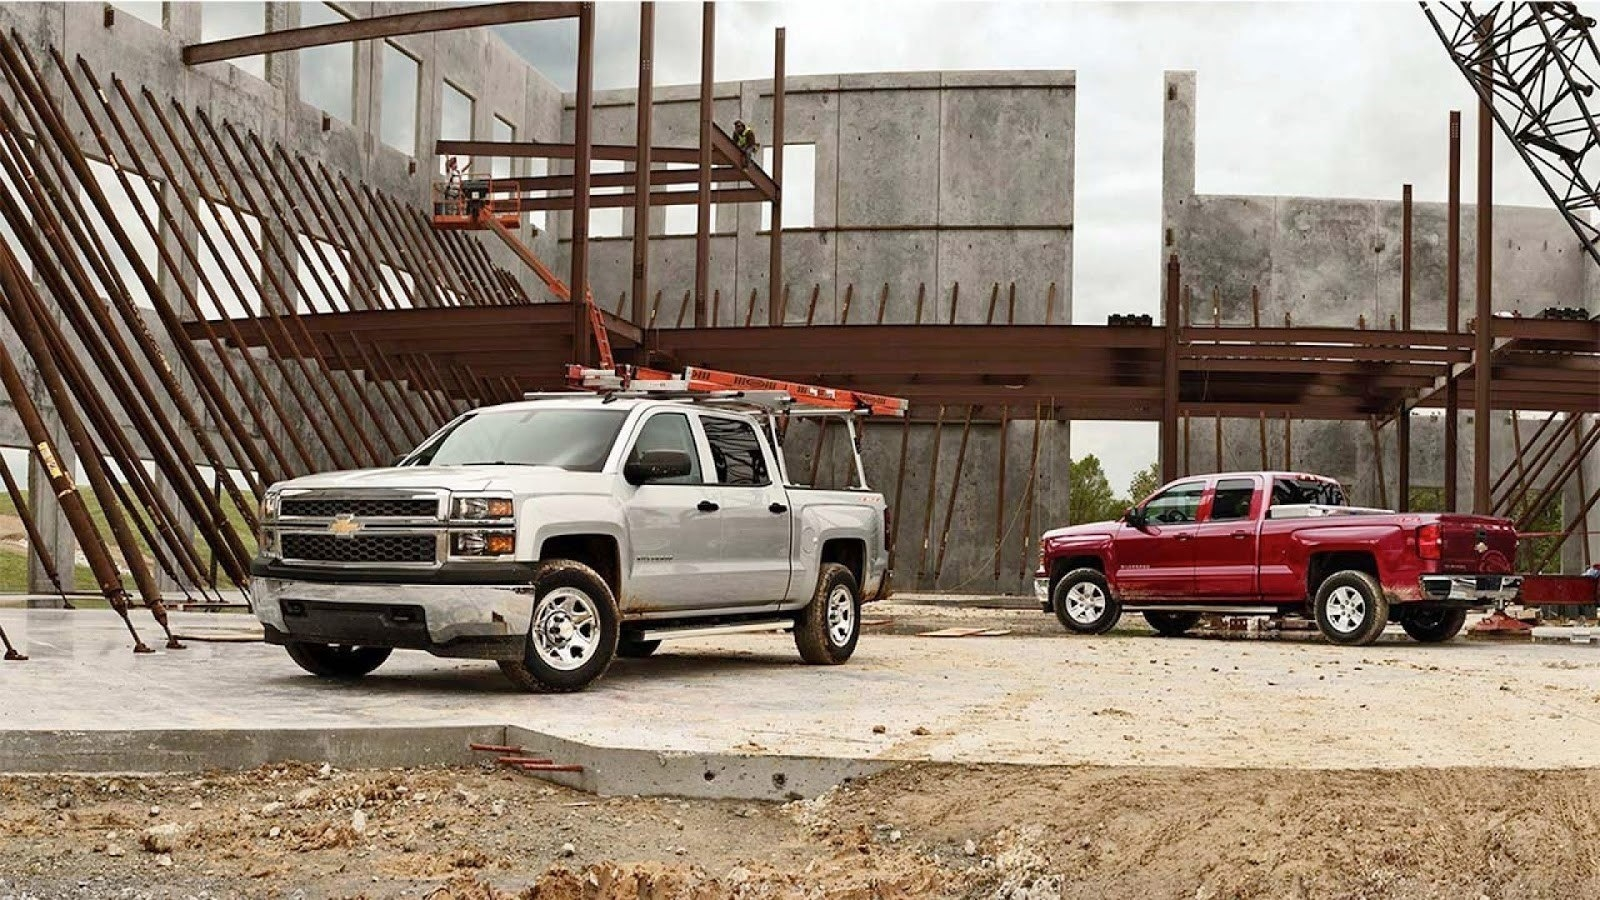 Chevy Silverado 1500 - The Family-Friendly Workhorse - North Country